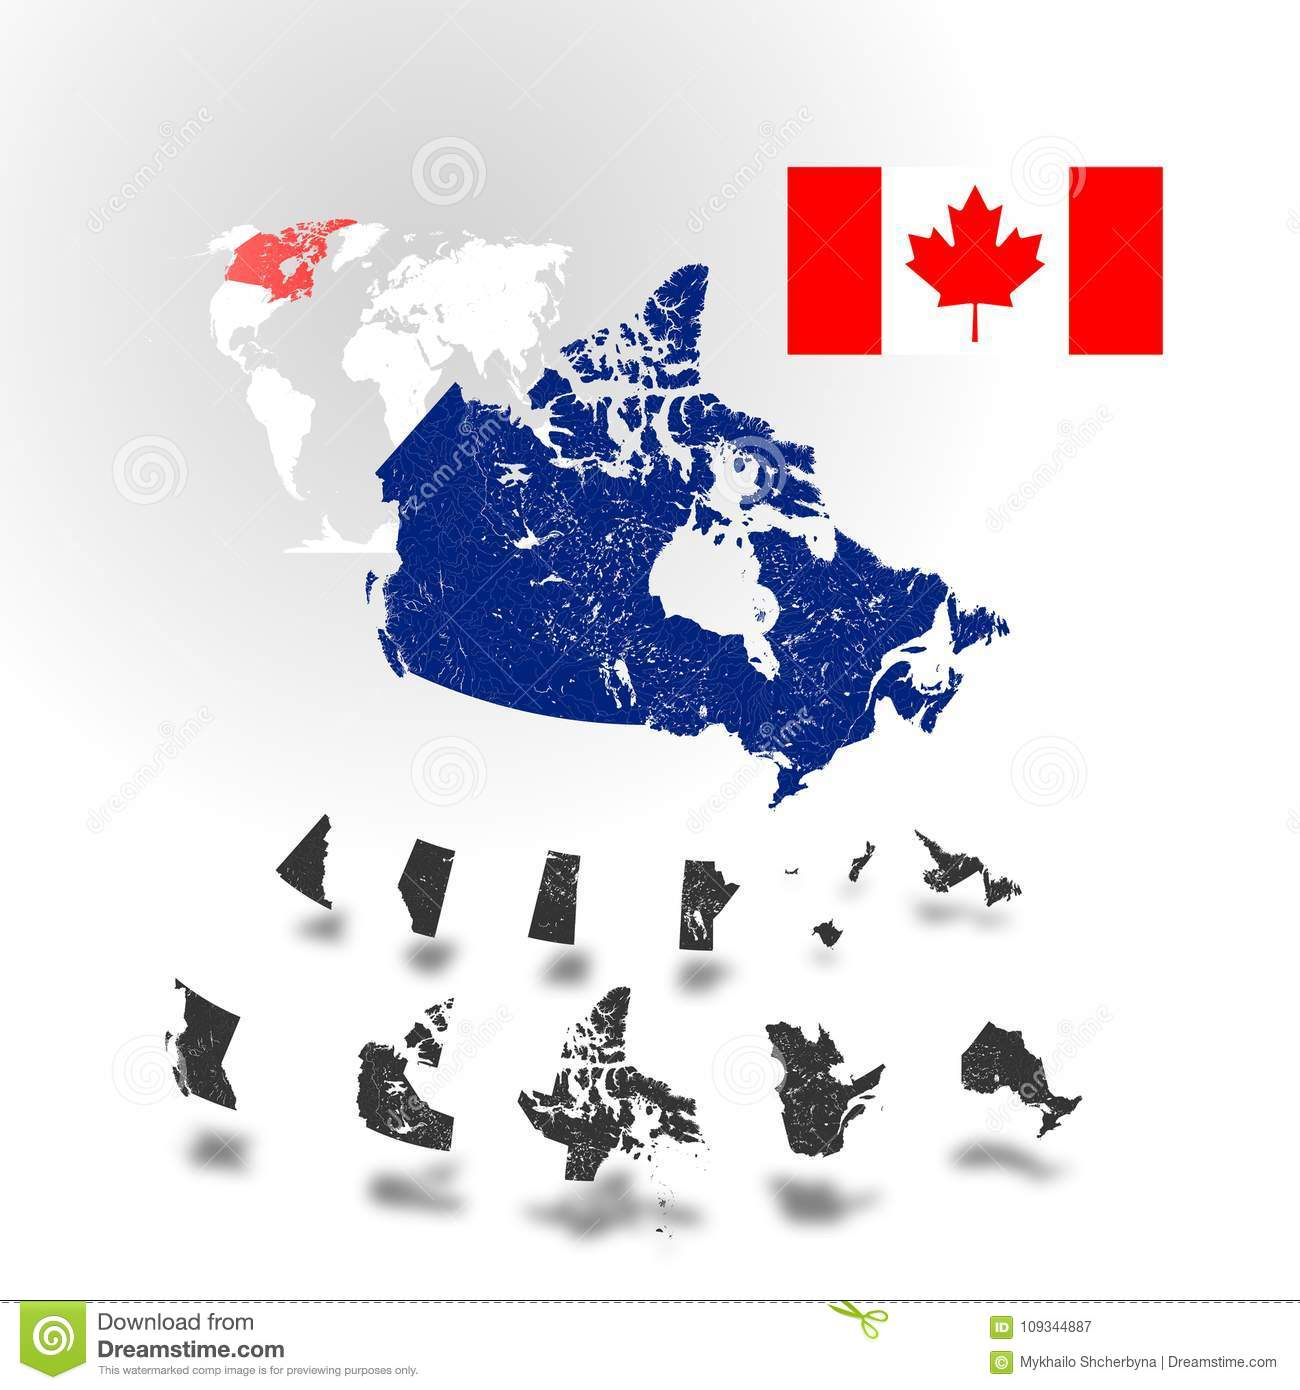 Map Of Canada With Lakes.Map Of Canada With Rivers And Lakes Stock Vector Illustration Of